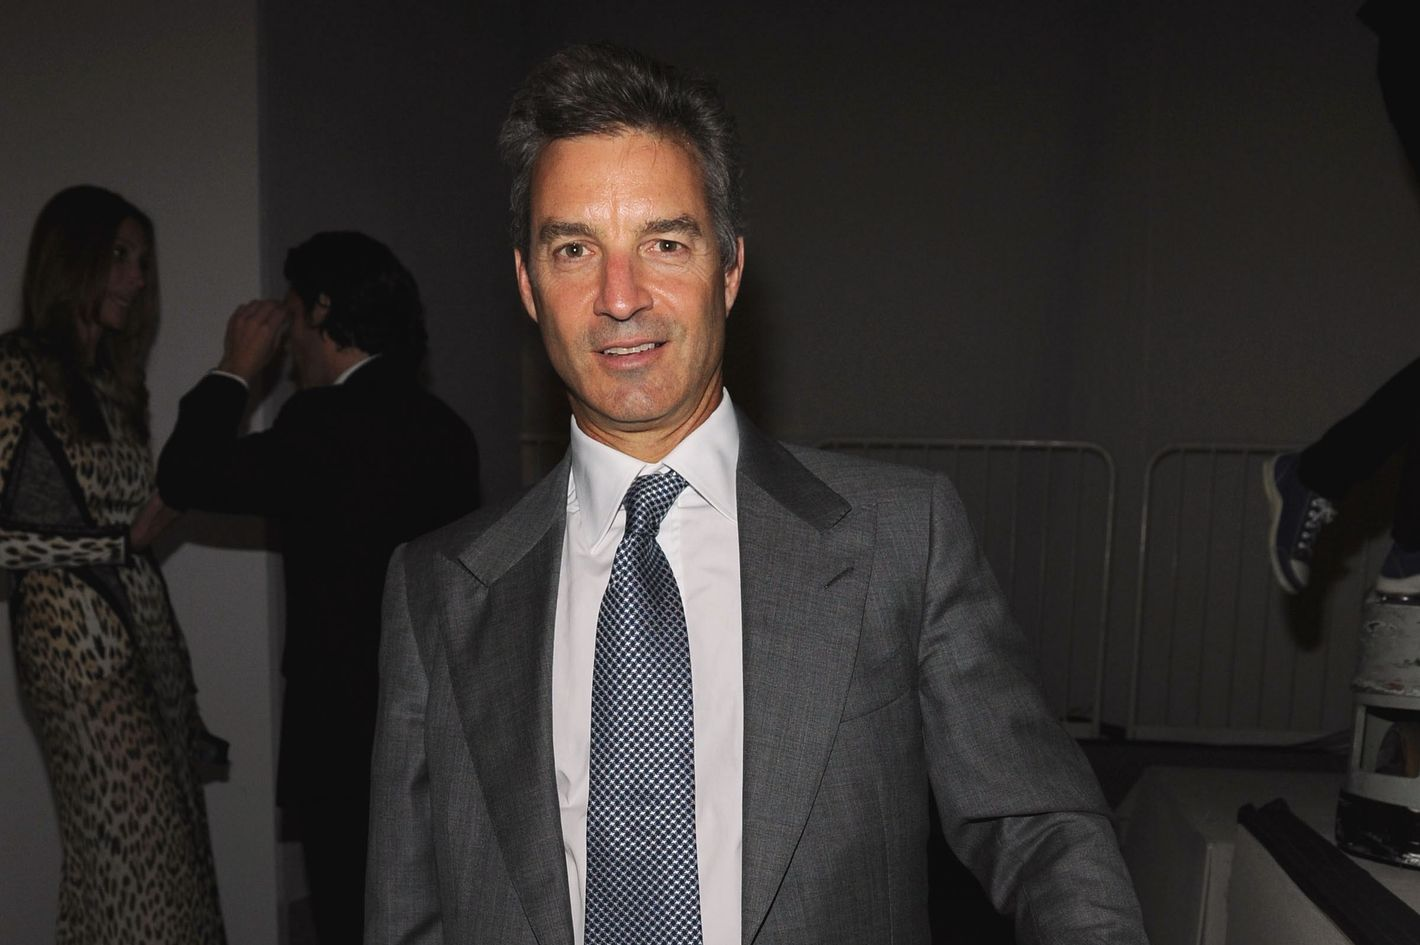 Dan Loeb==9th Annual Style Awards- Inside==The Stage, Lincoln Center, NYC==September 05, 2012.